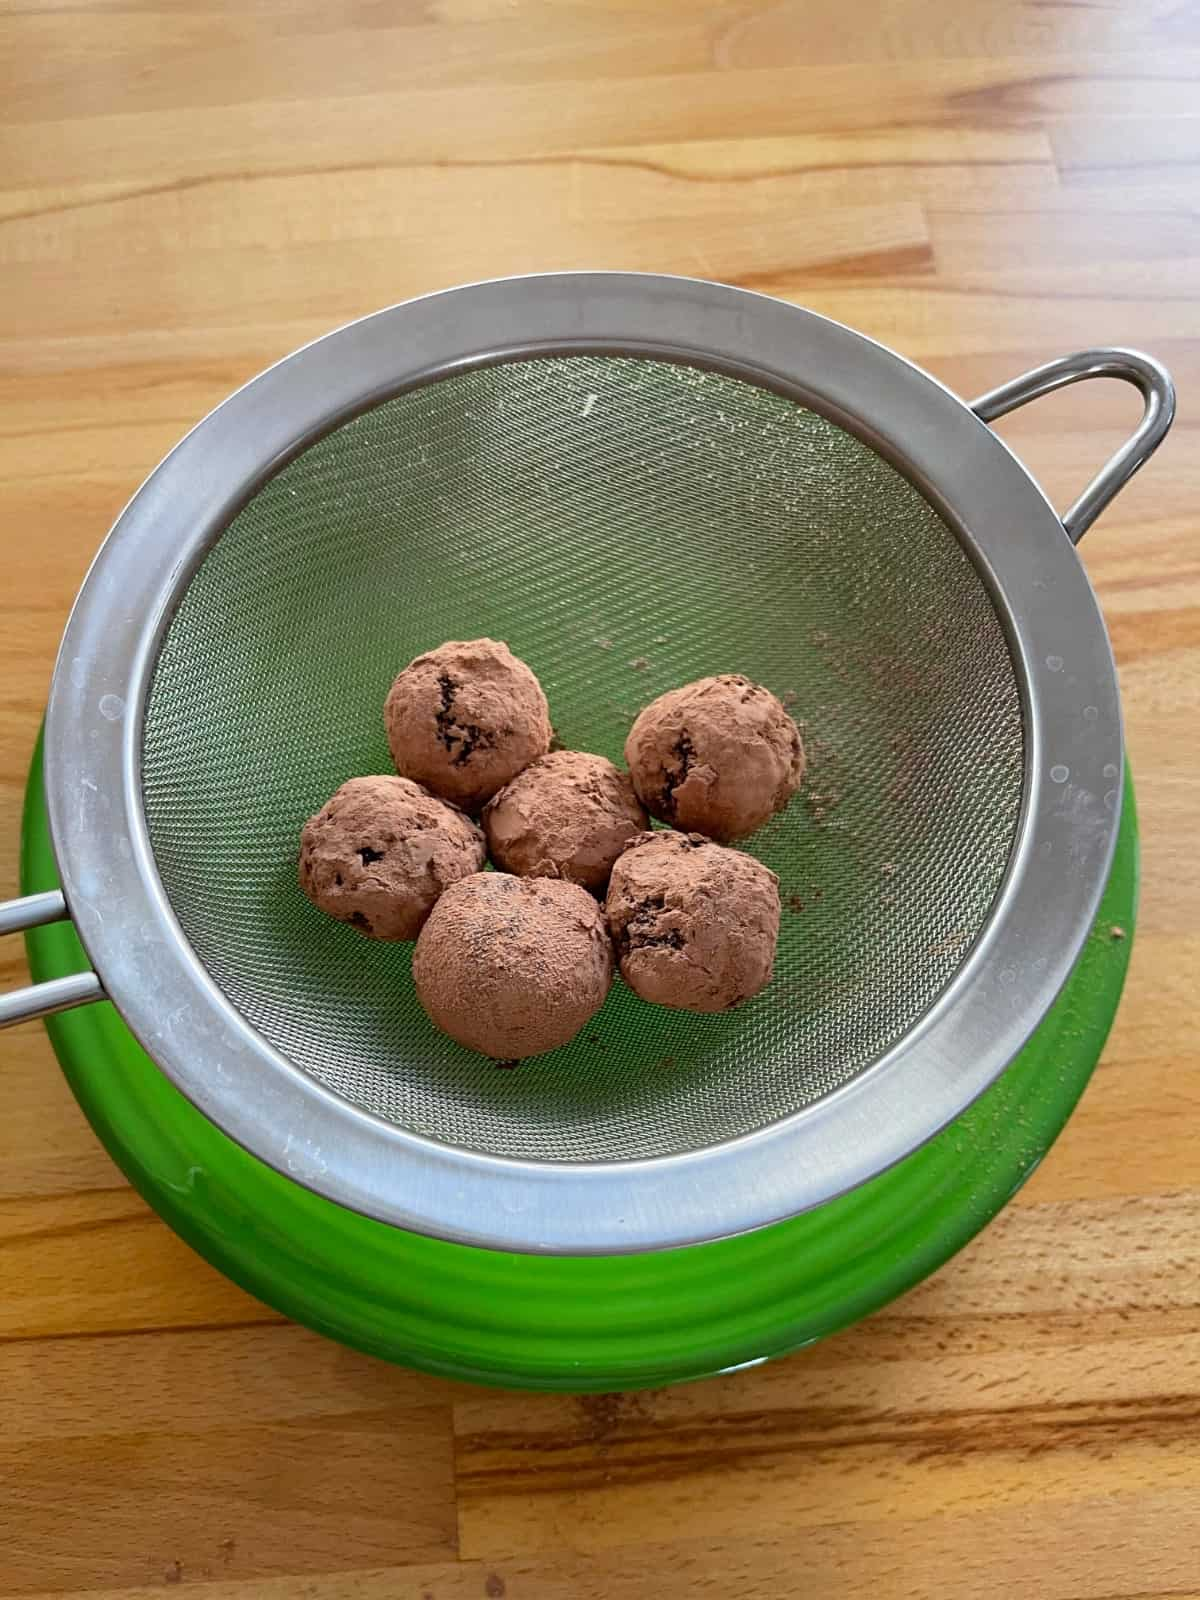 Cranberry chocolate truffles in sieve over green plate.